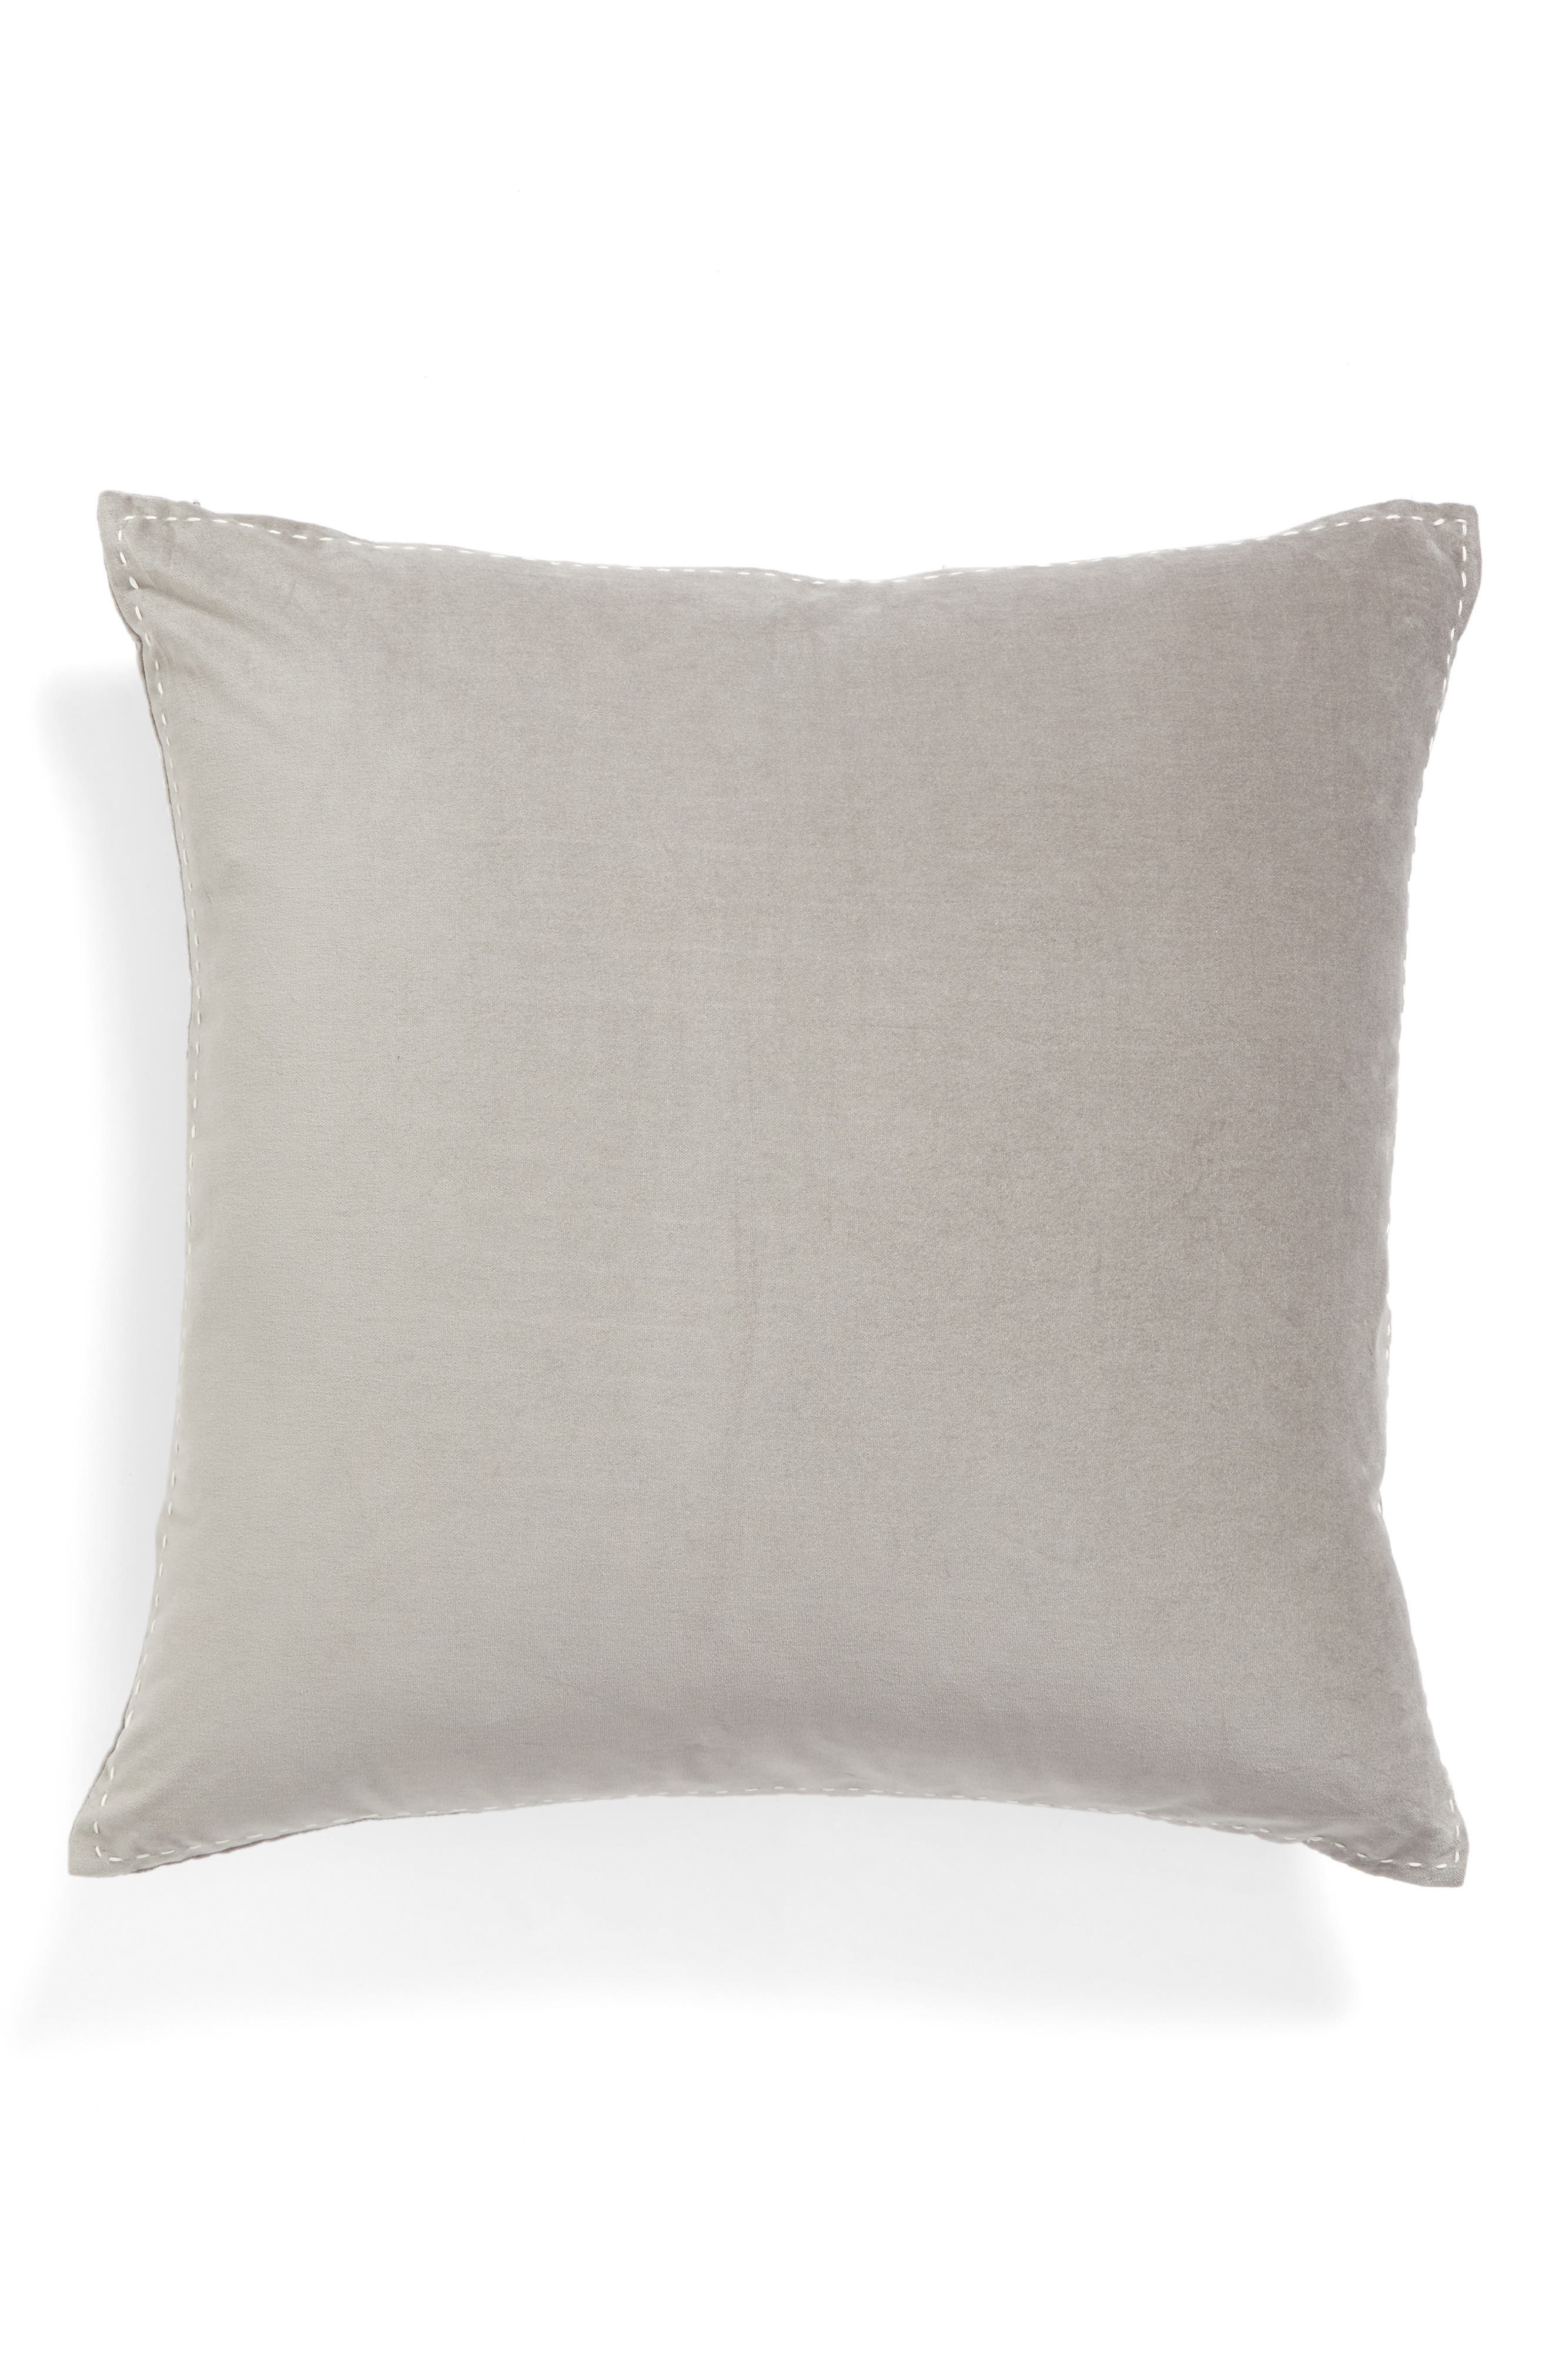 Nordstrom at Home Ticking Border Accent Pillow